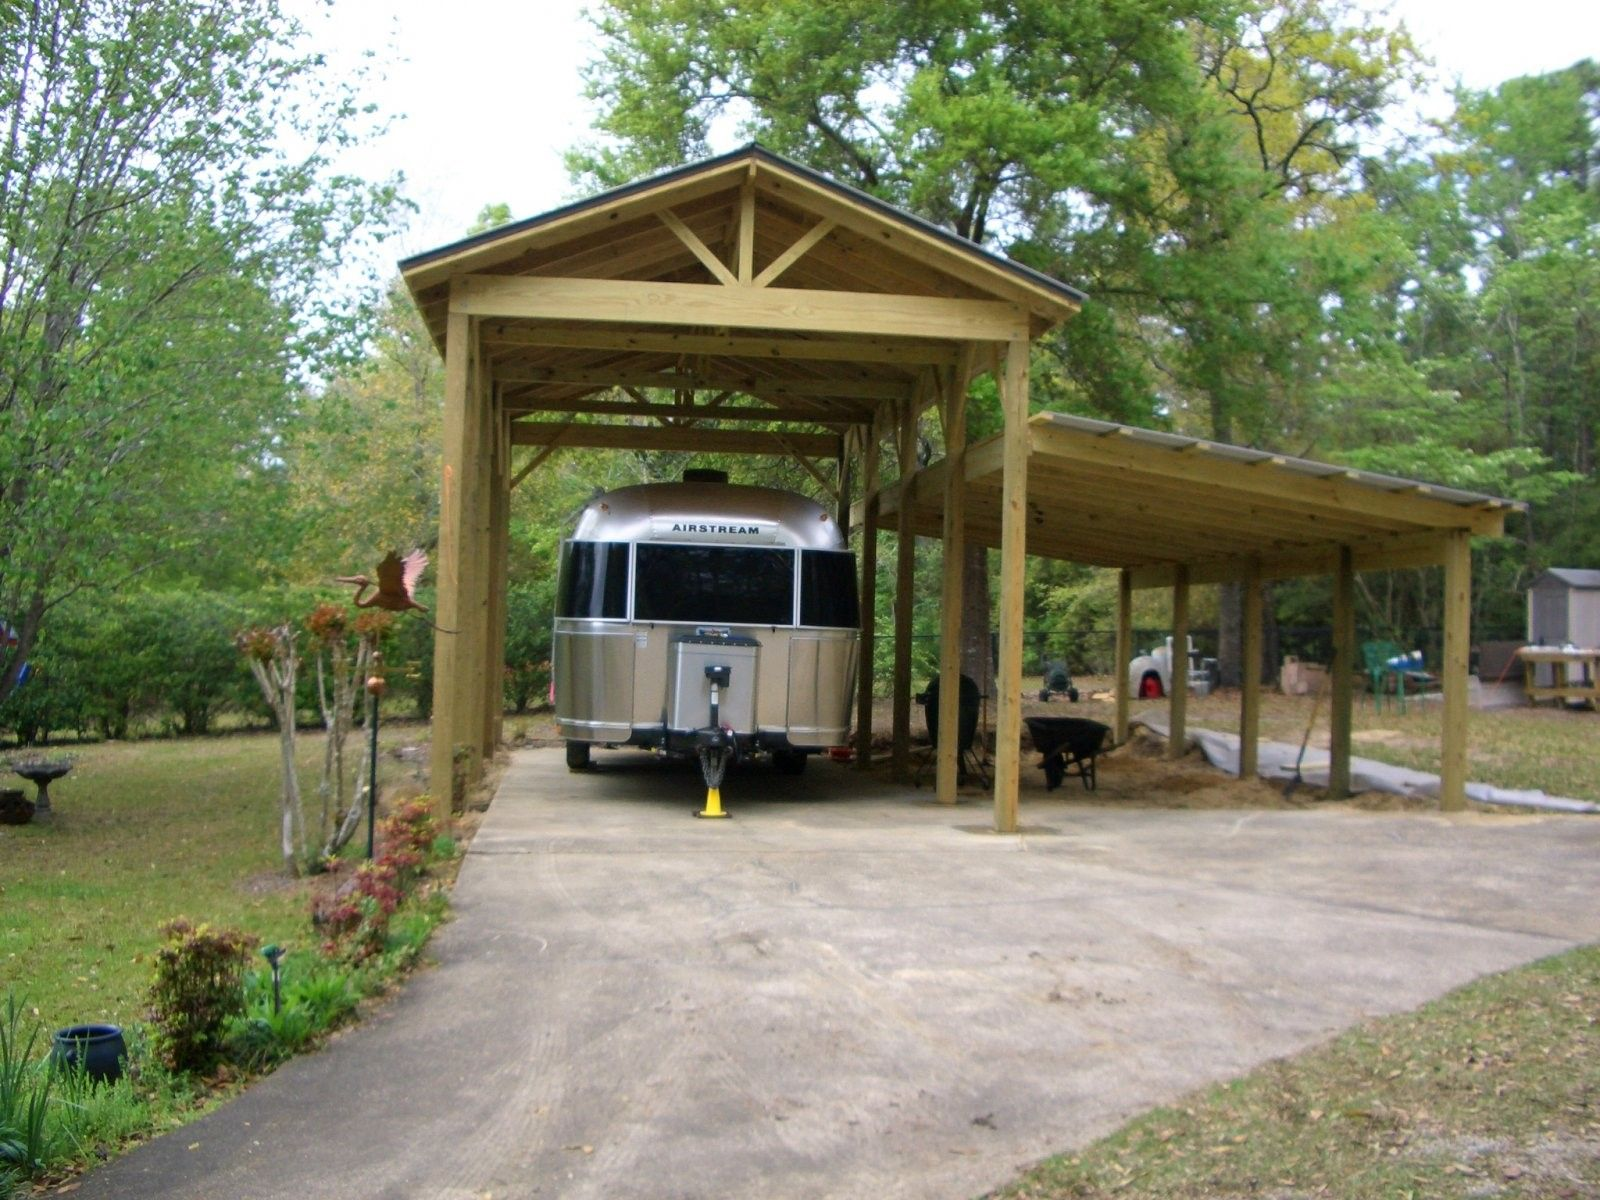 Costco Carport covers an open platform (10x20) for tent